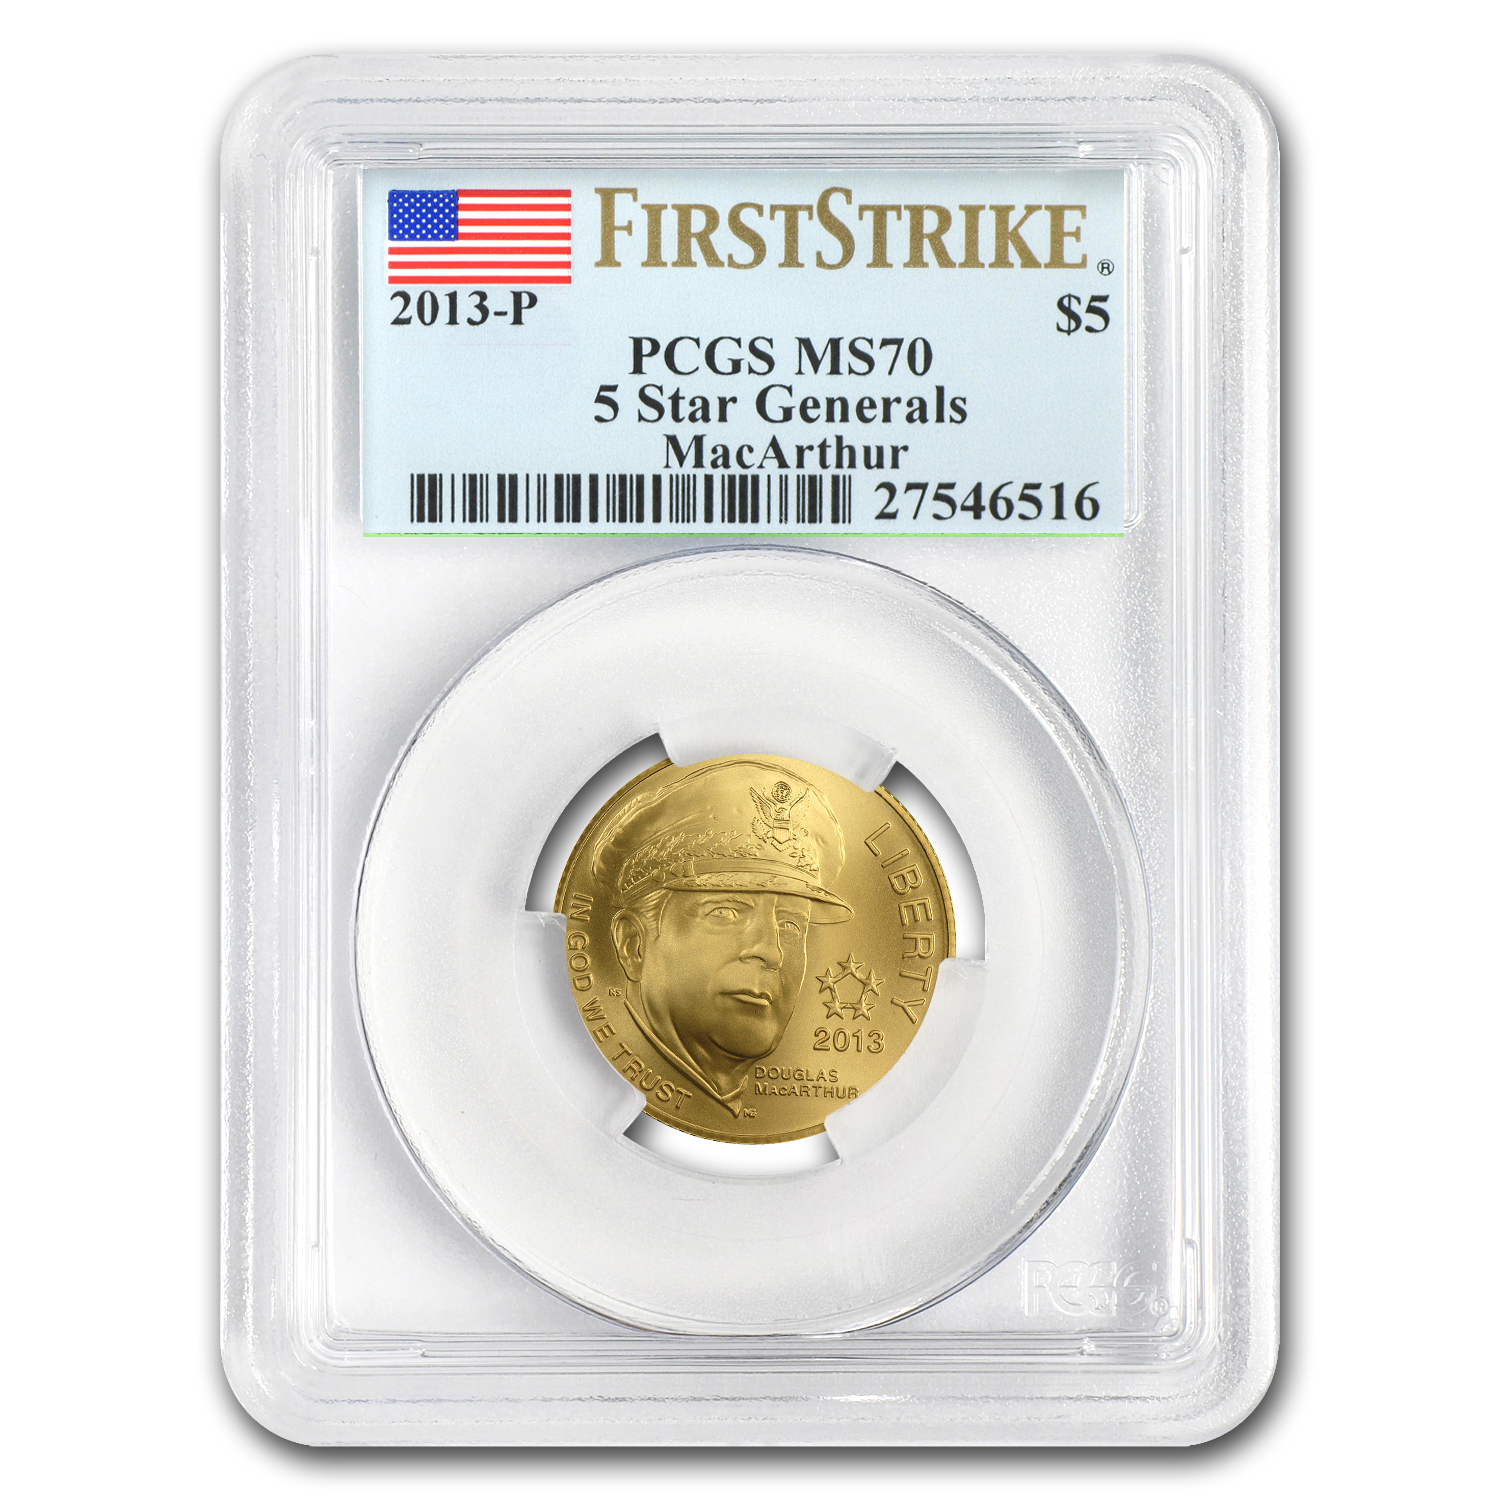 2013-P Gold $5 Commem Five Star General MS-70 PCGS (FS)